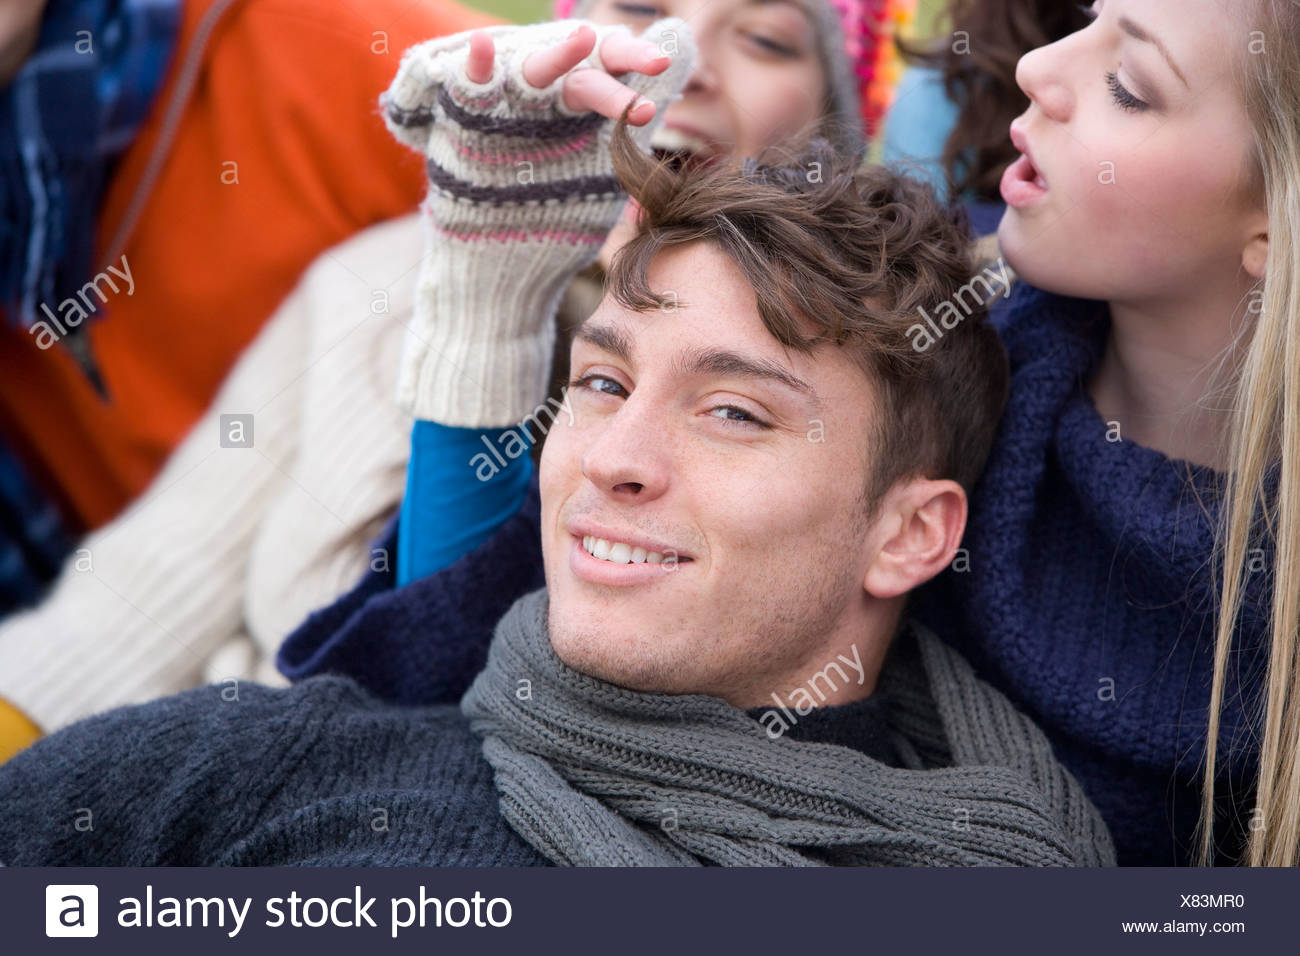 Teenage girl playing with young man's hair - Stock Image